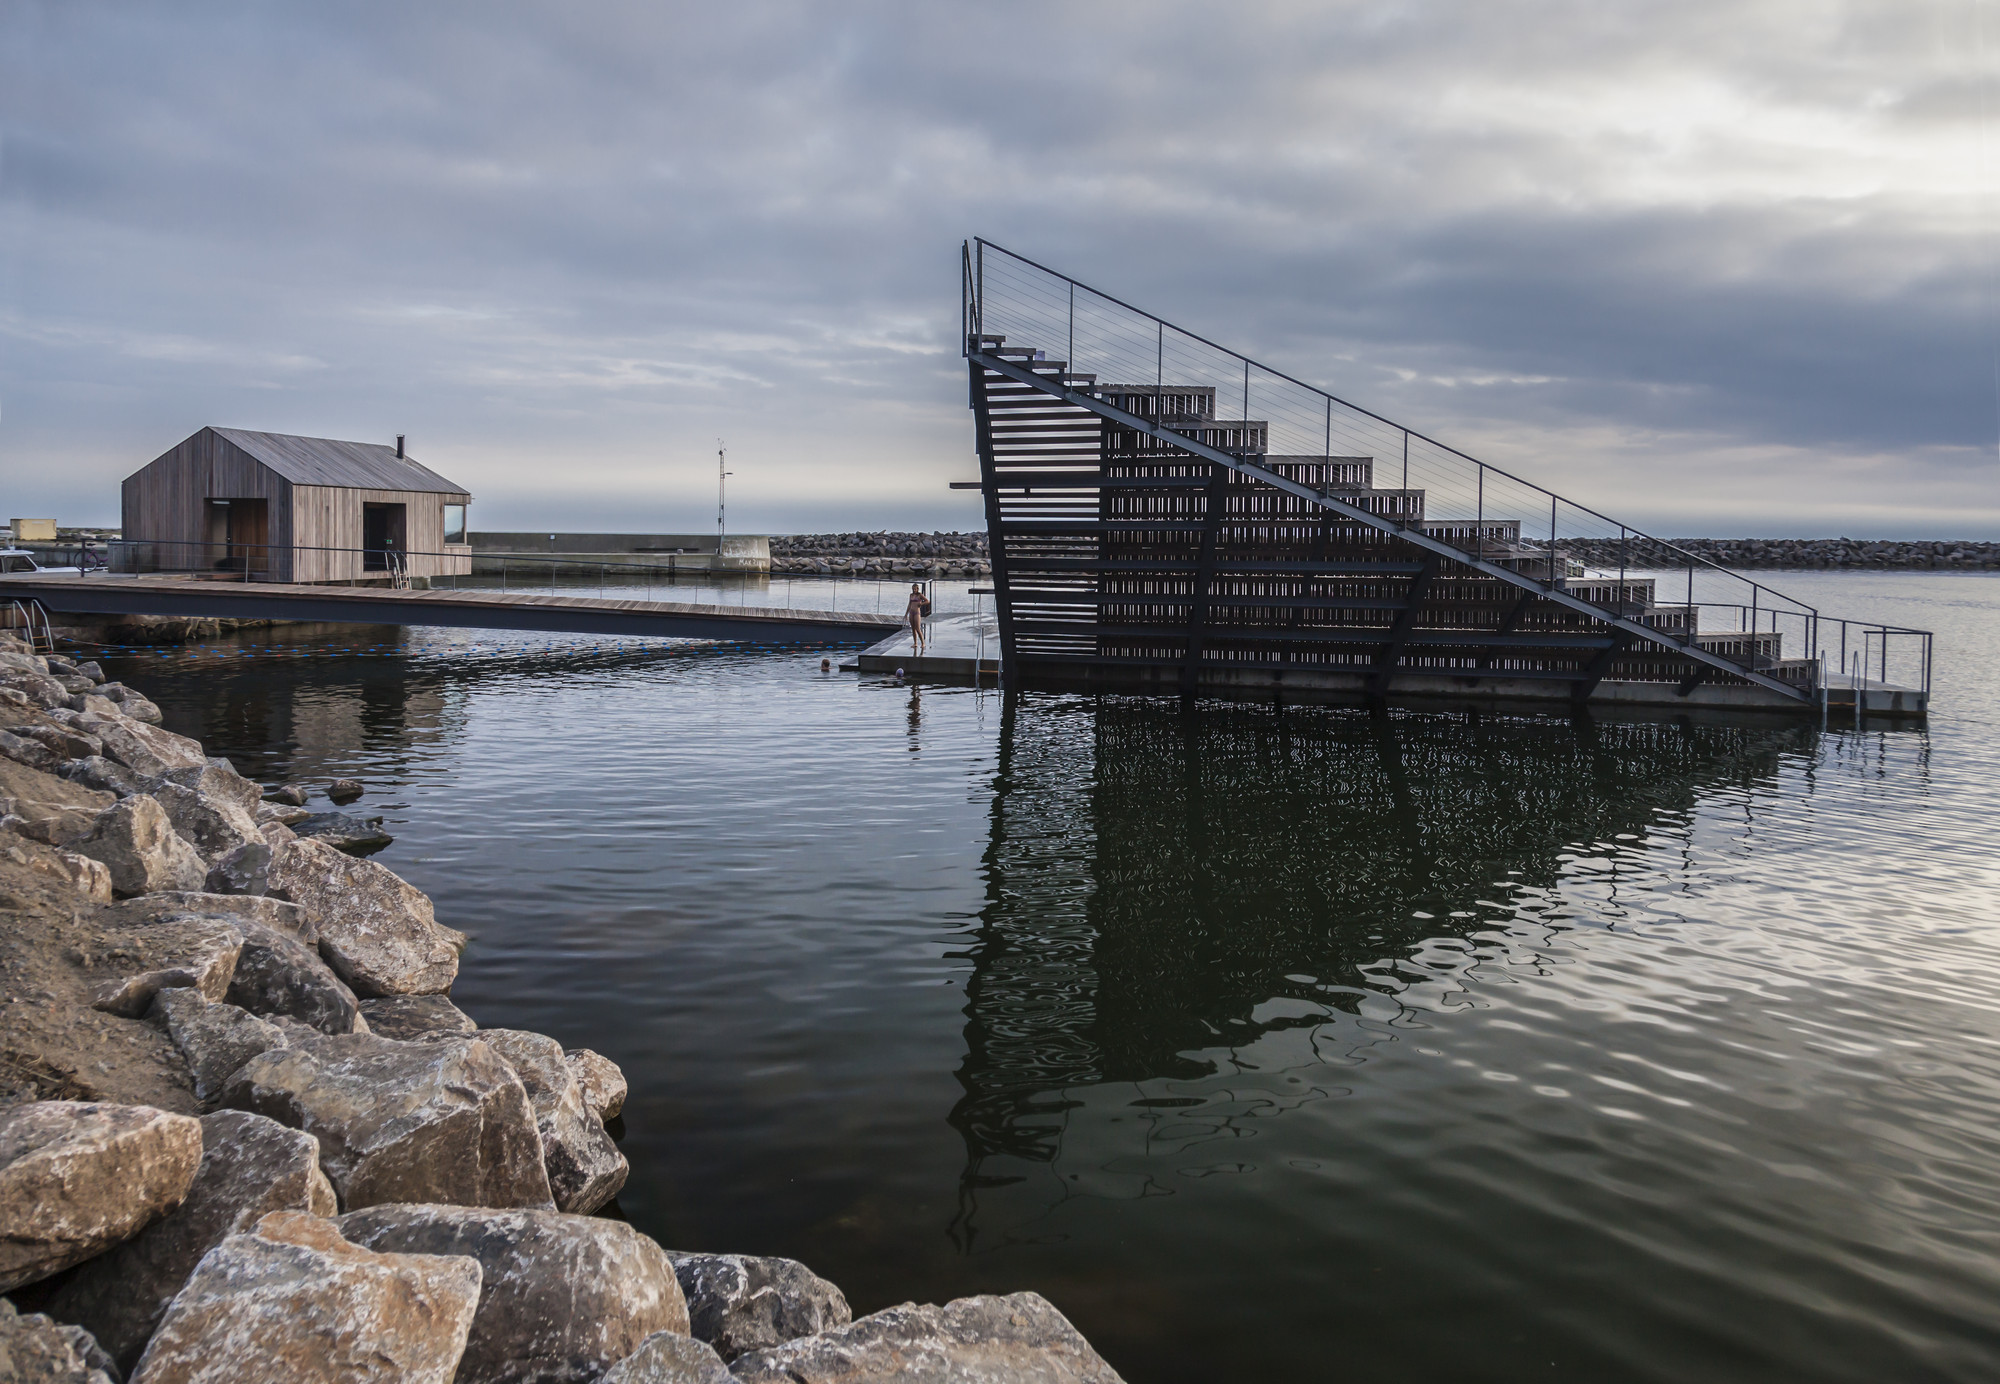 Photo of Hasle Harbour Bath by White architects. Photo Credit: Signe Find Larsen.